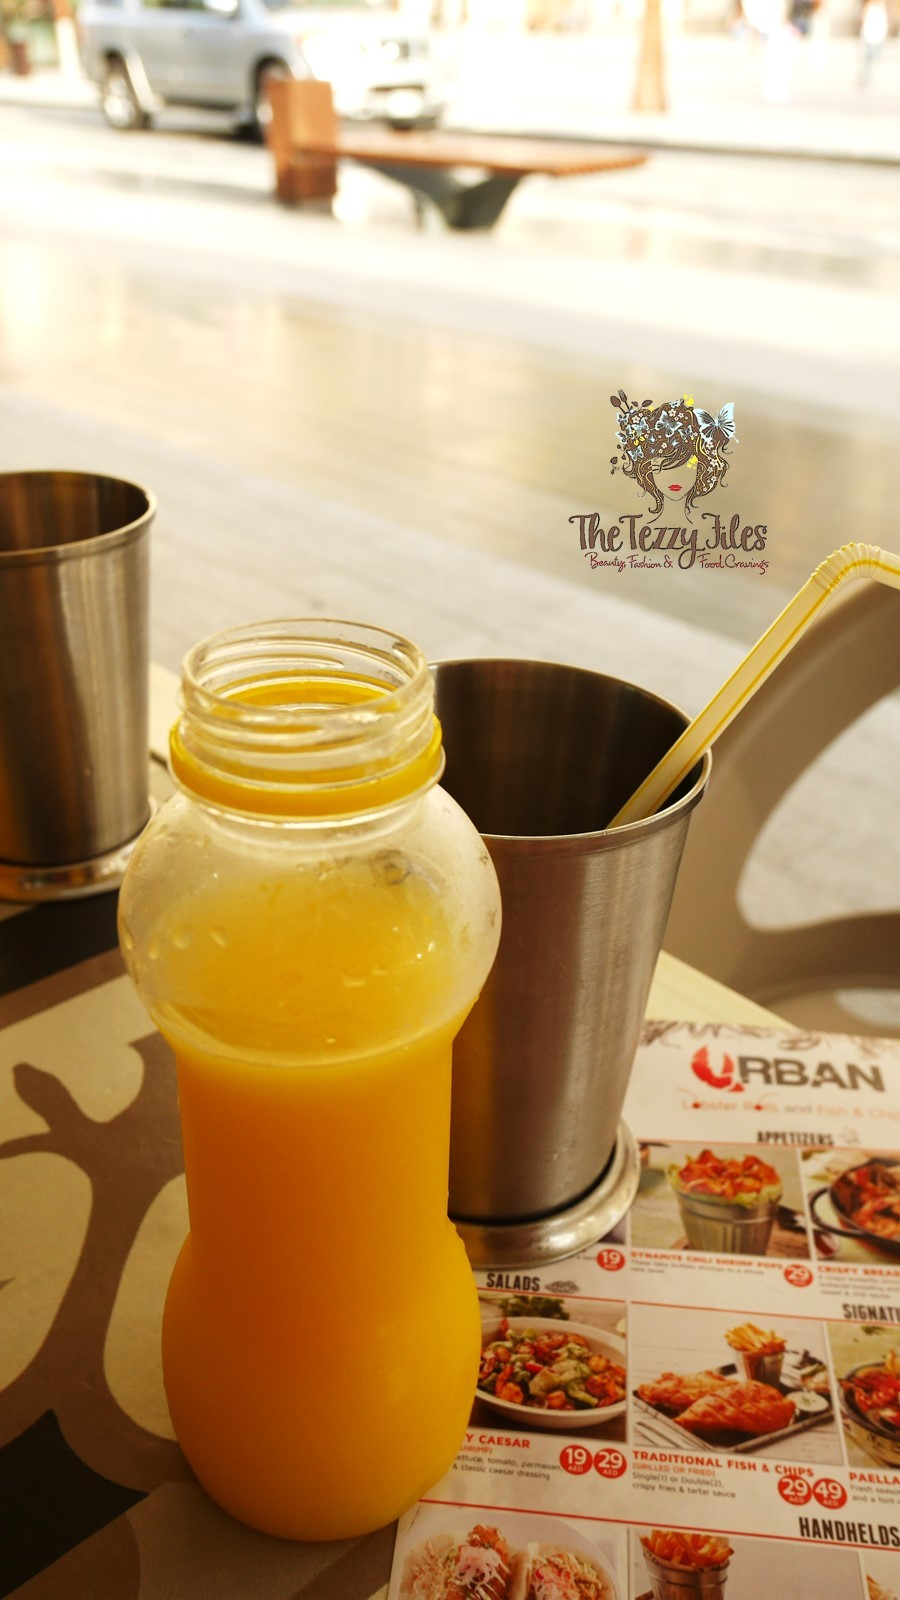 urban-seafood-the-beach-jbr-review-the-tezzy-files-dubai-food-blog-uae-blogger-lobster-shrimps-fast-food-fresh-orange-juice-2